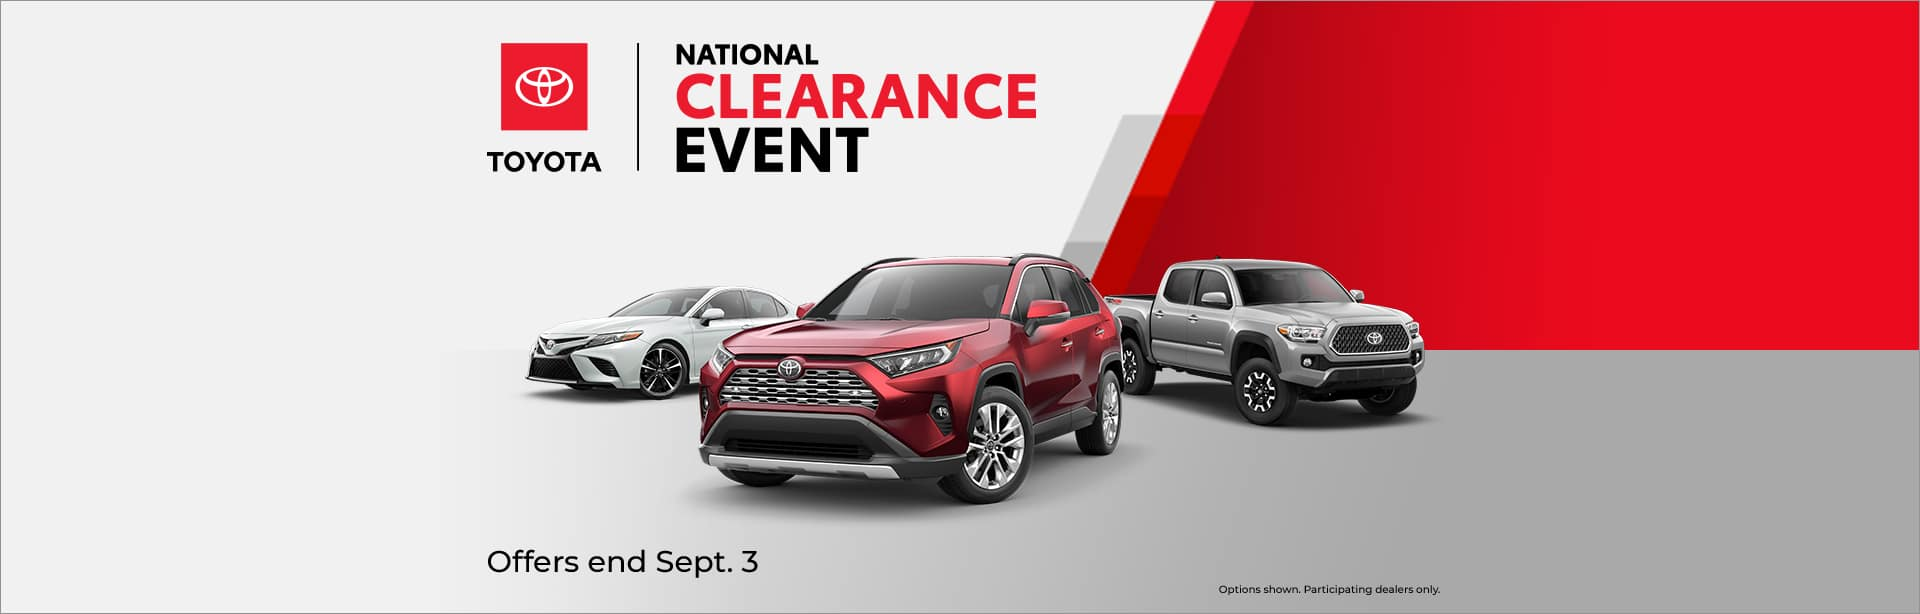 CAIN TOYOTA NATIONAL CLEARANCE EVENT NORTH CANTON OHIO